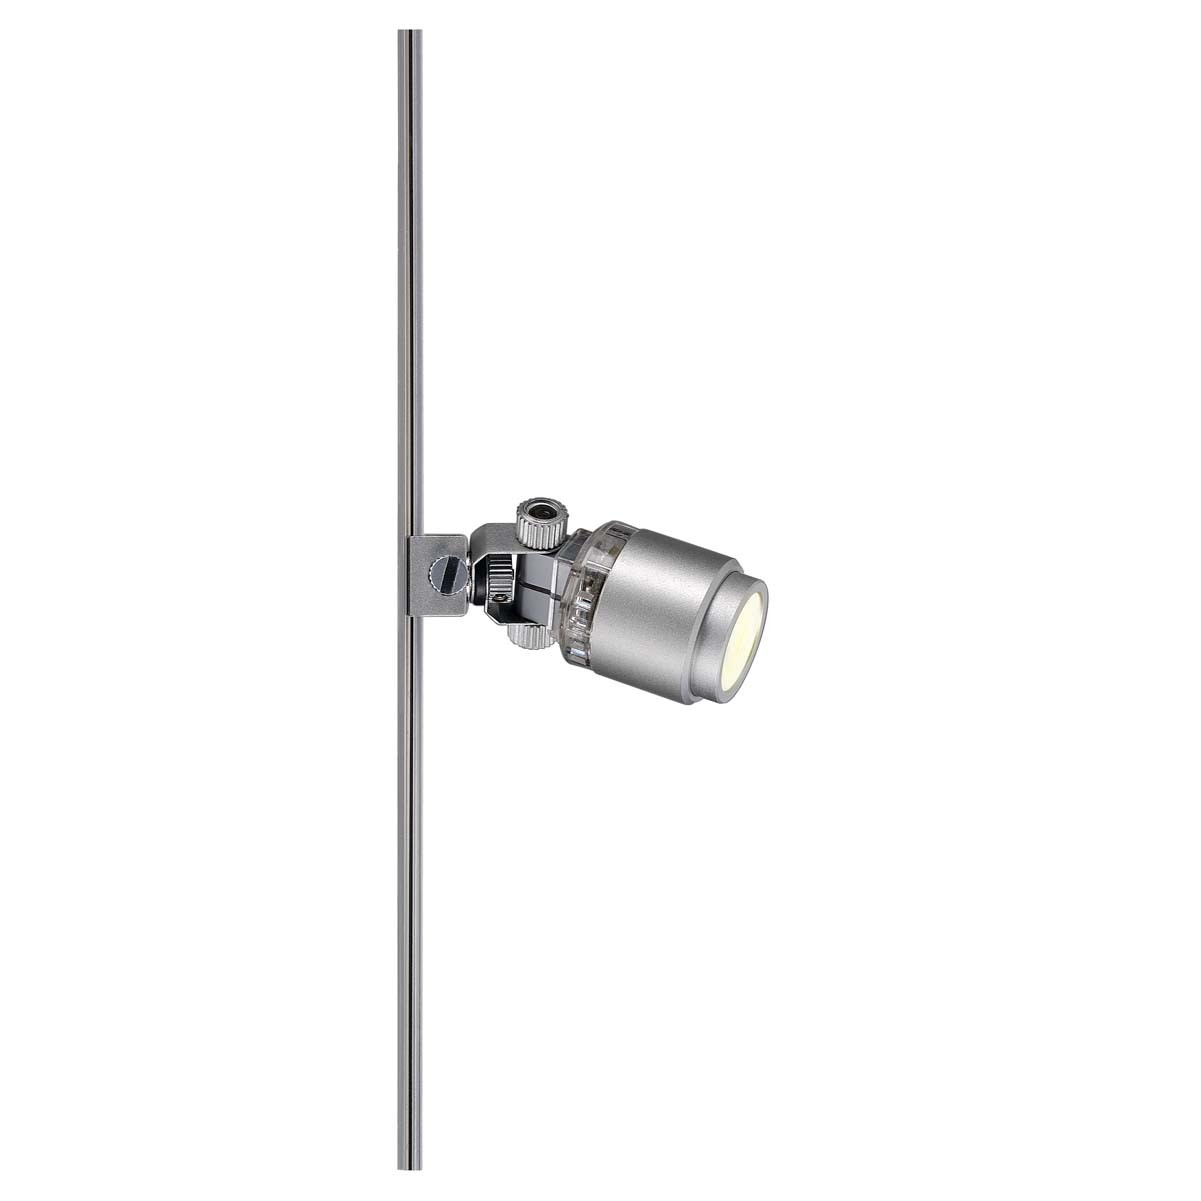 SLV 186042 Power-LED Spot 1W 3000K Silver Grey Glu-Trax / Mini Alu Track 12V Light